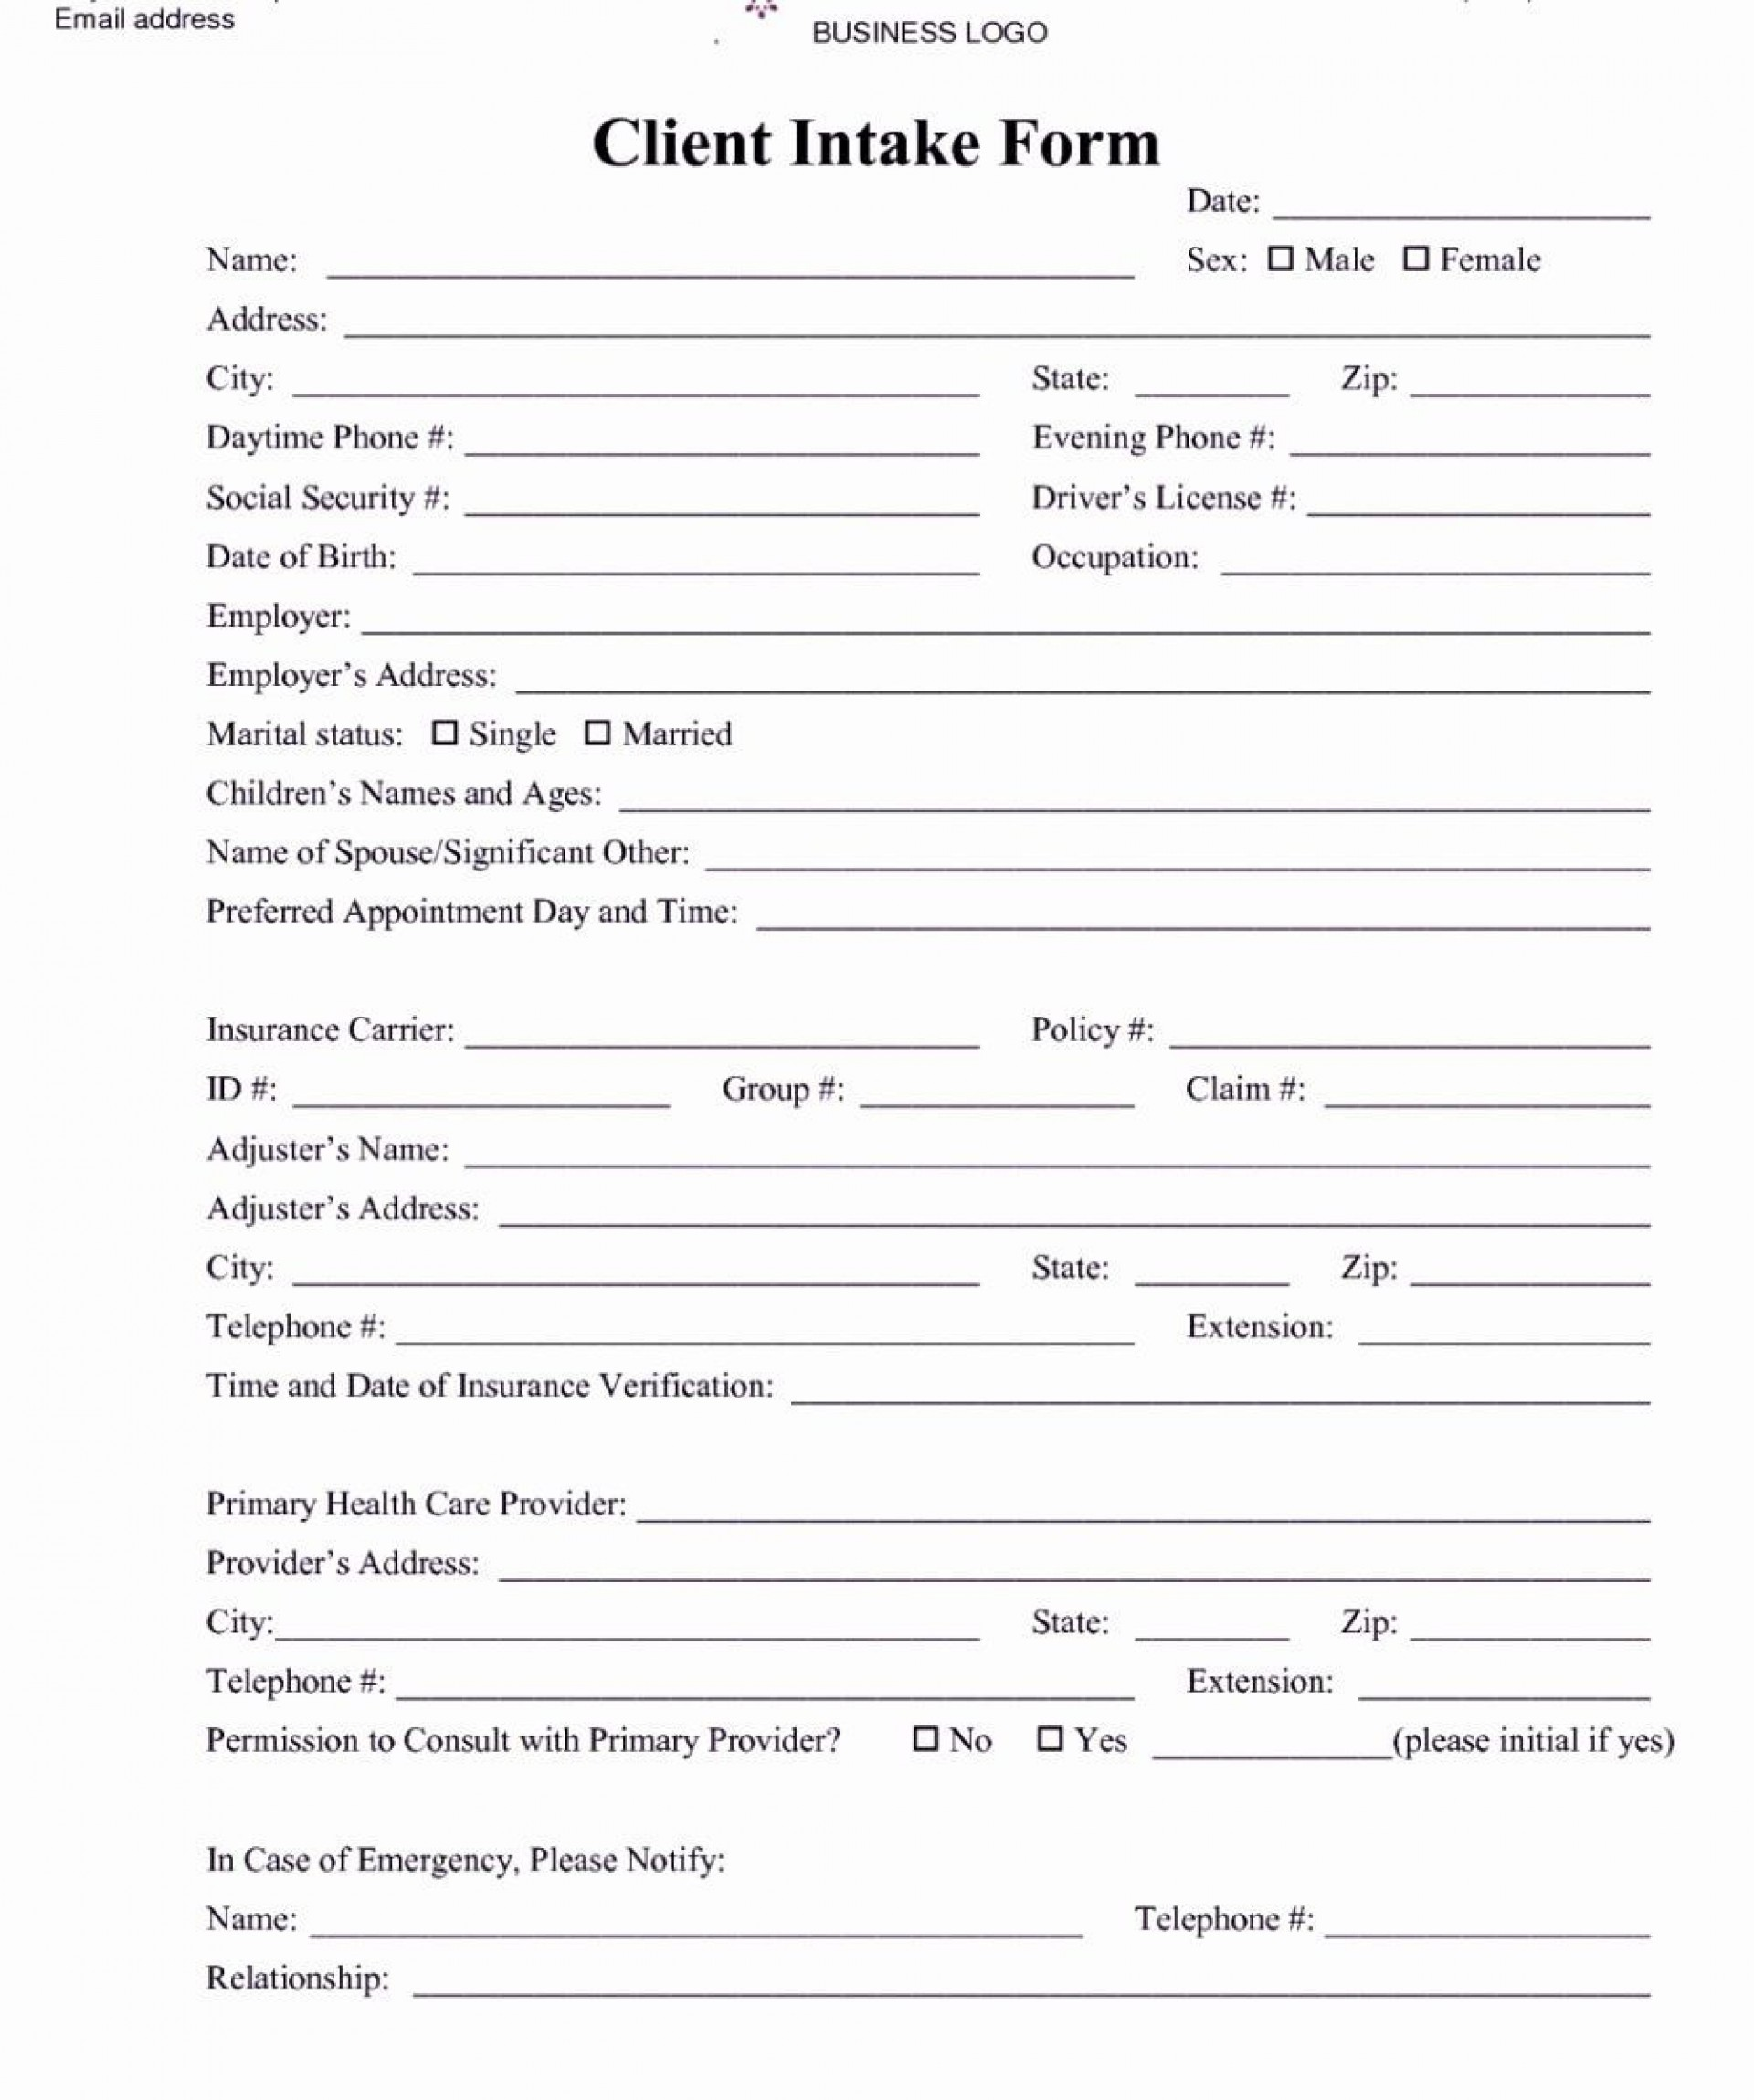 001 Awesome Patient Intake Form Template High Definition  Word Client Excel Pdf1920